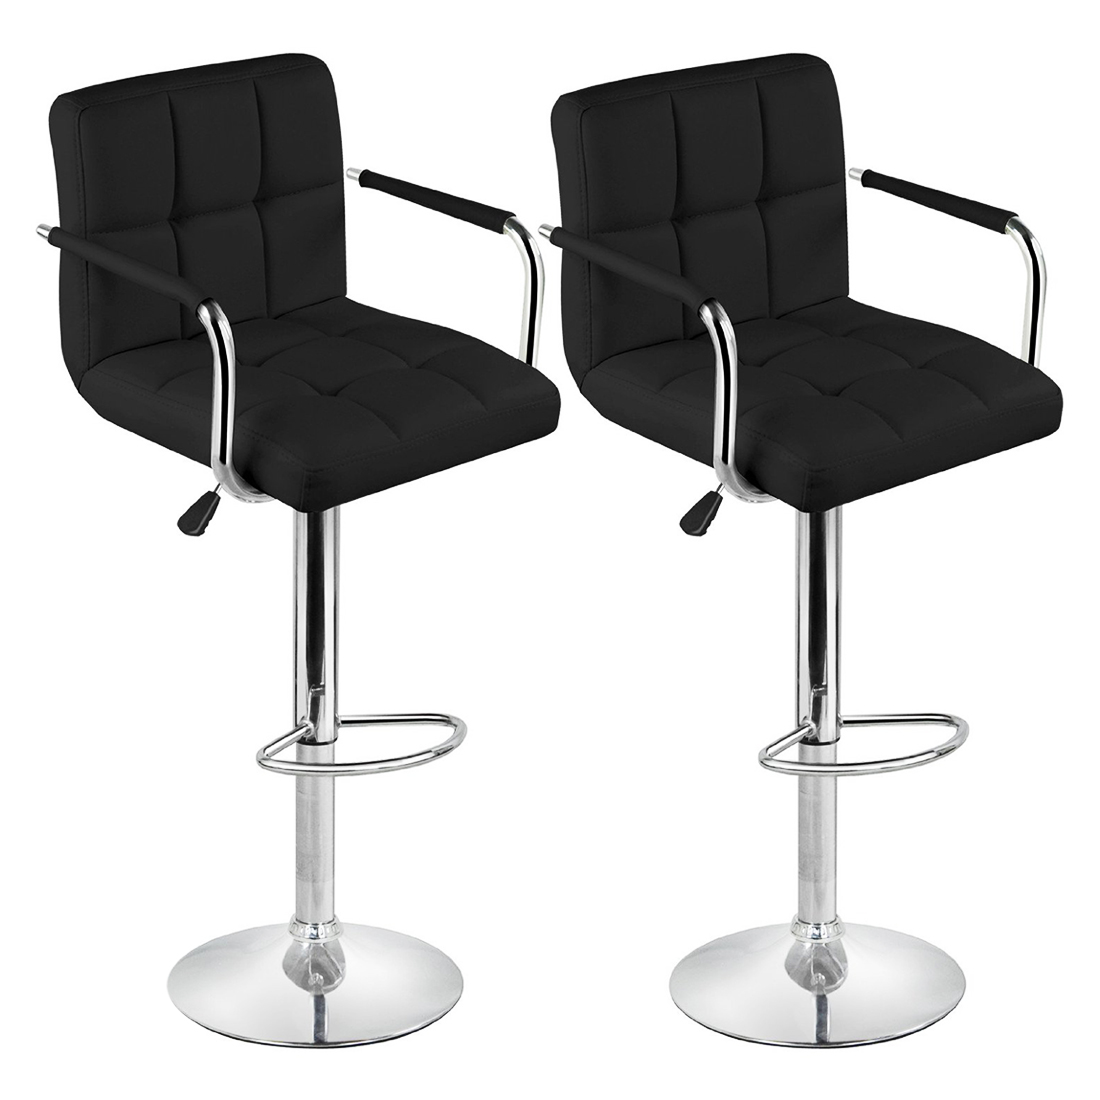 2 Faux Leather Kitchen Breakfast Bar Stool Bar Stools Swivel Stools цены